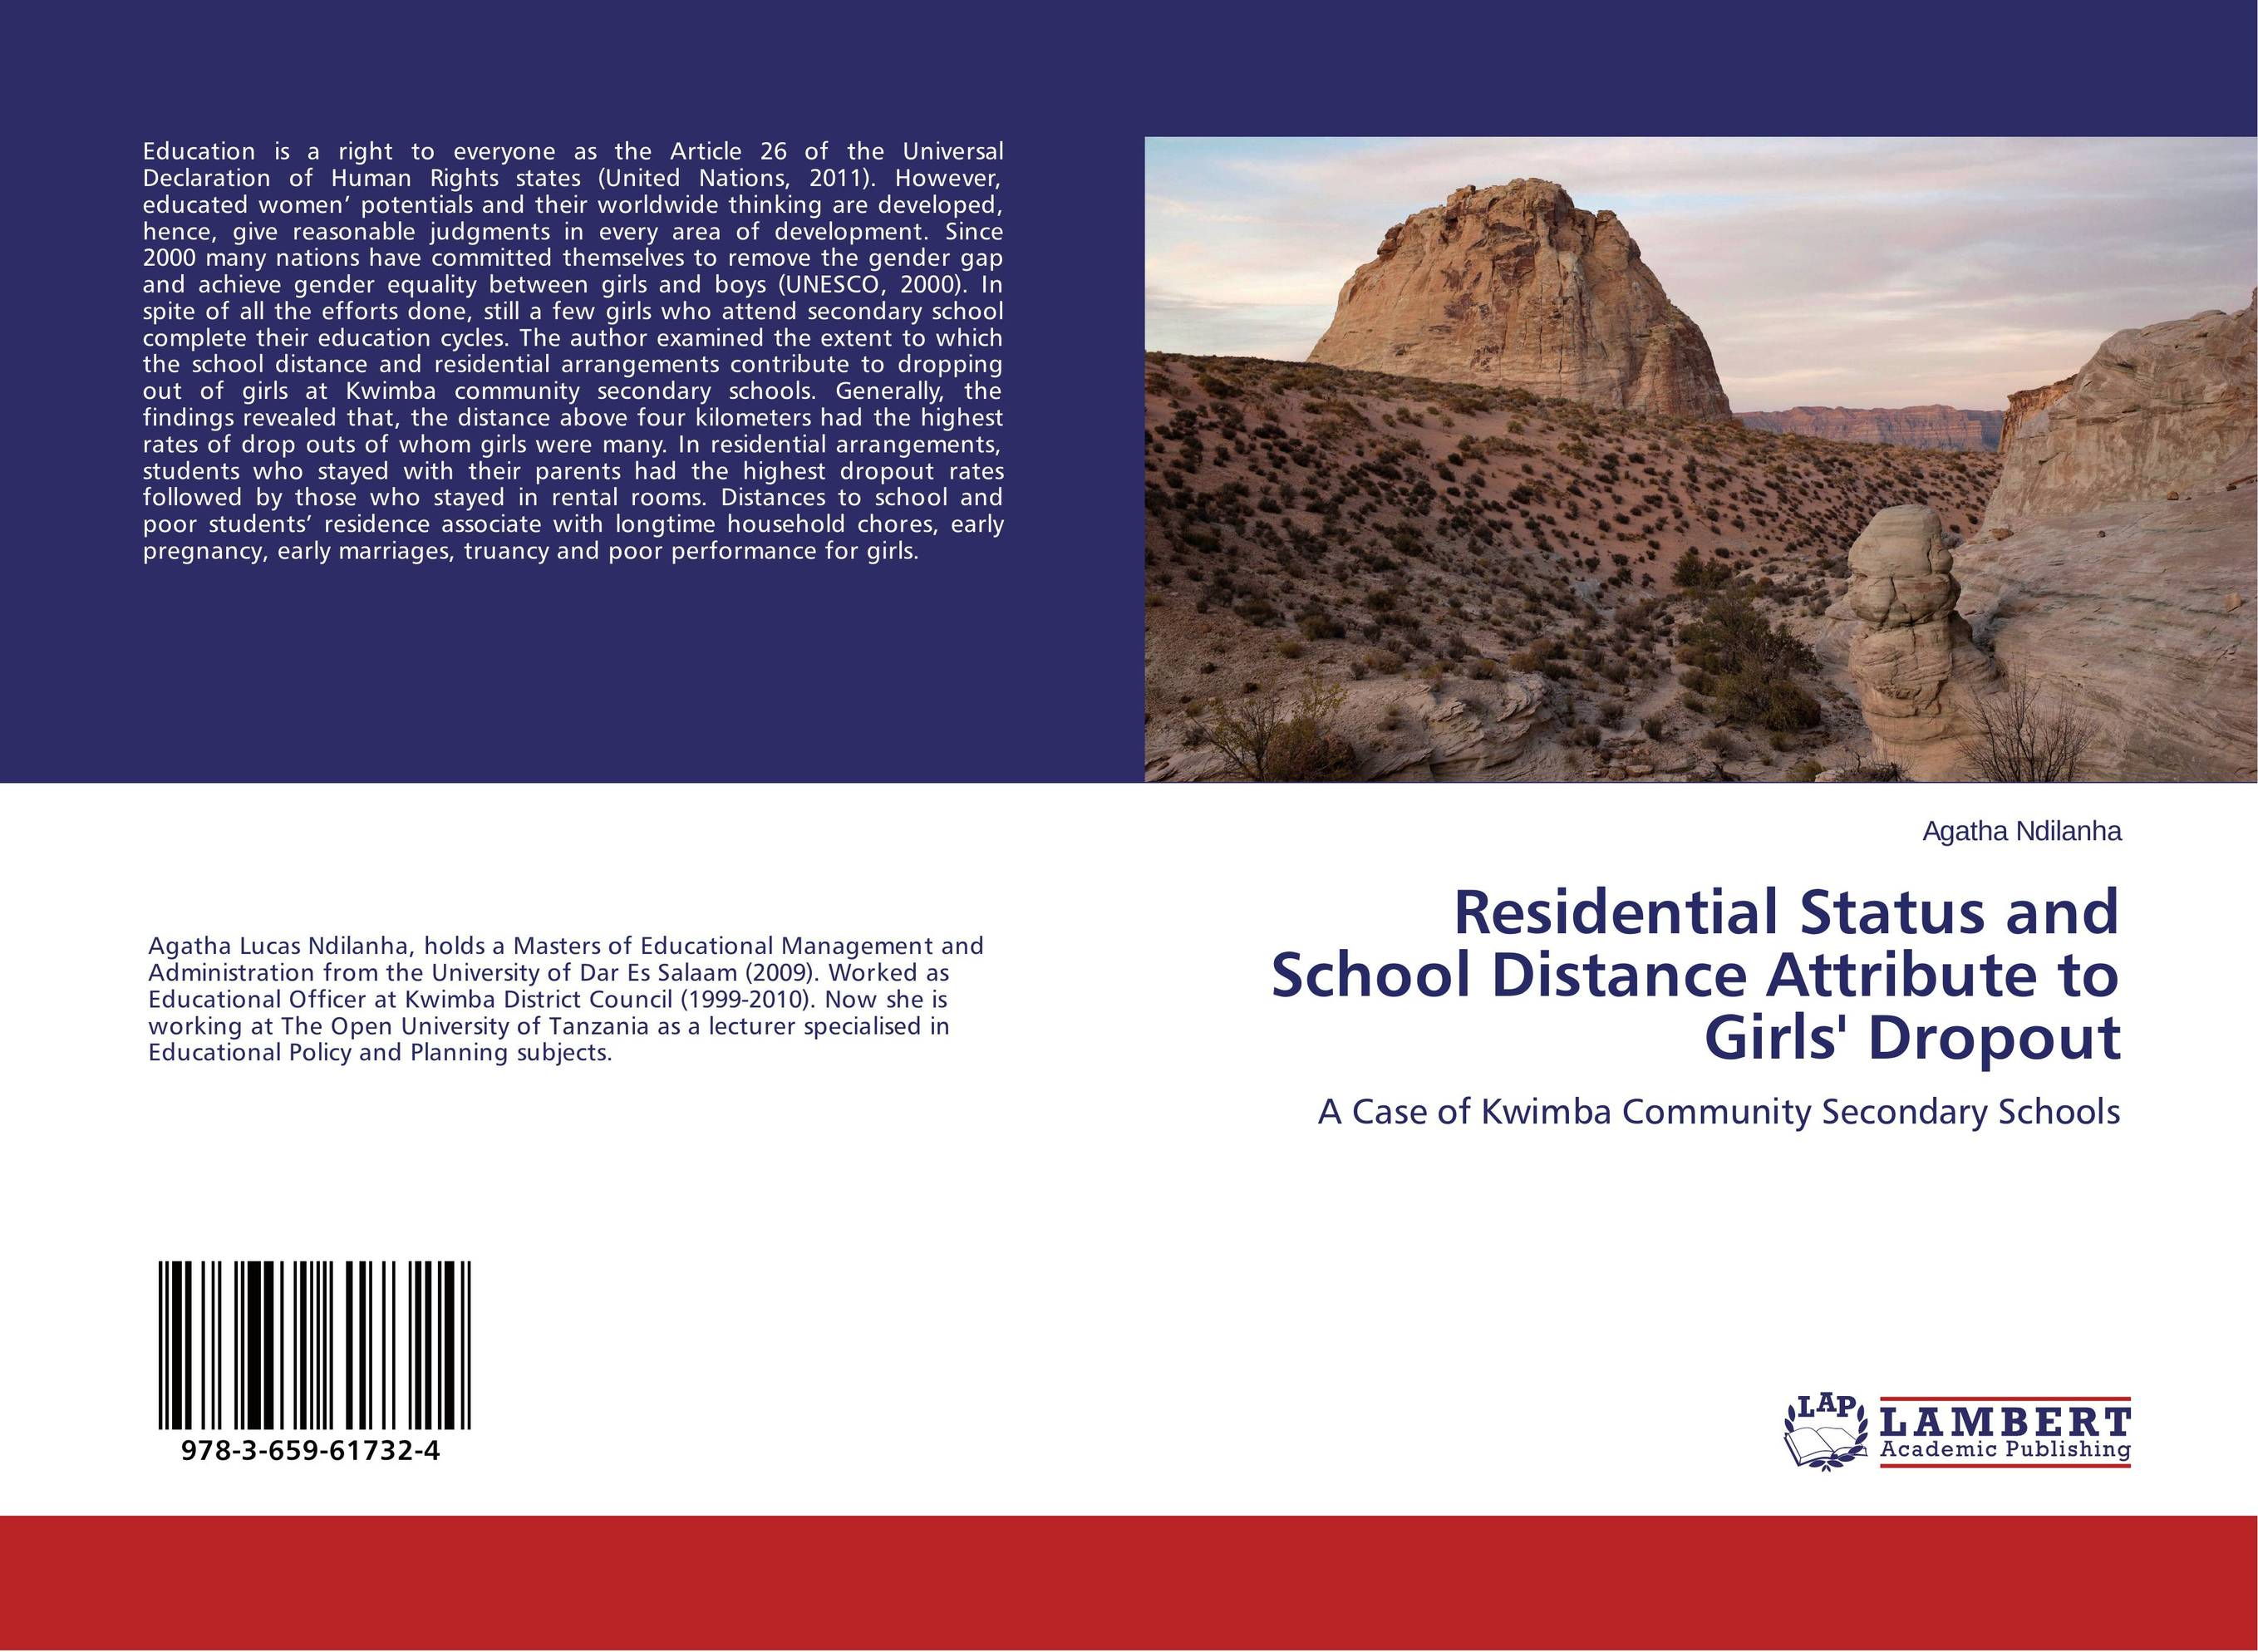 Residential Status and School Distance Attribute to Girls' Dropout